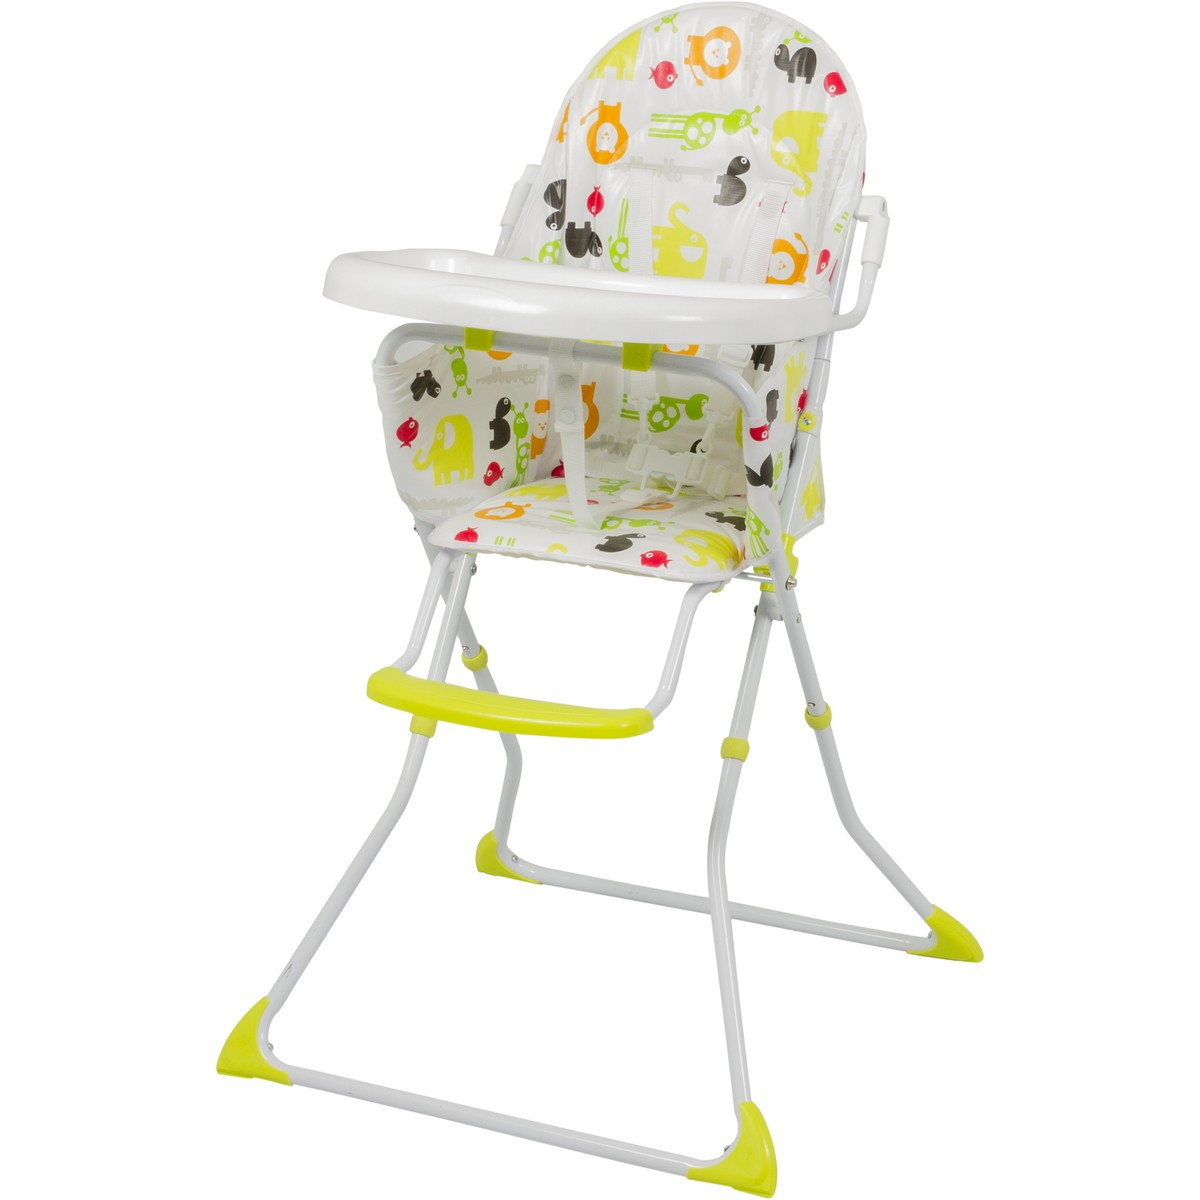 high chairs amazon steelcraft chair dymples animals big w